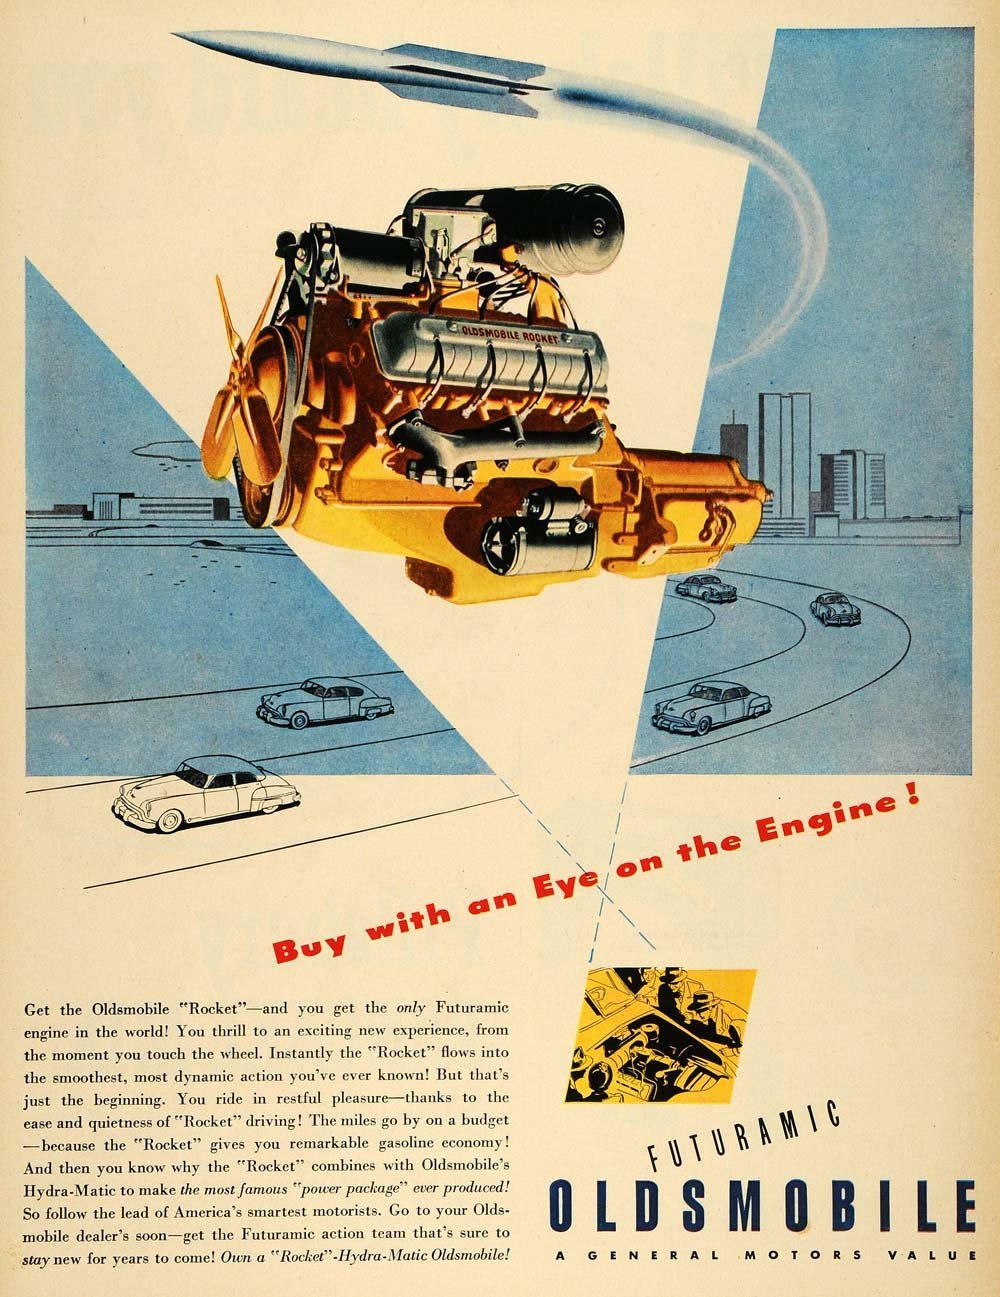 Oldsmobile futuramic rocket engine ad